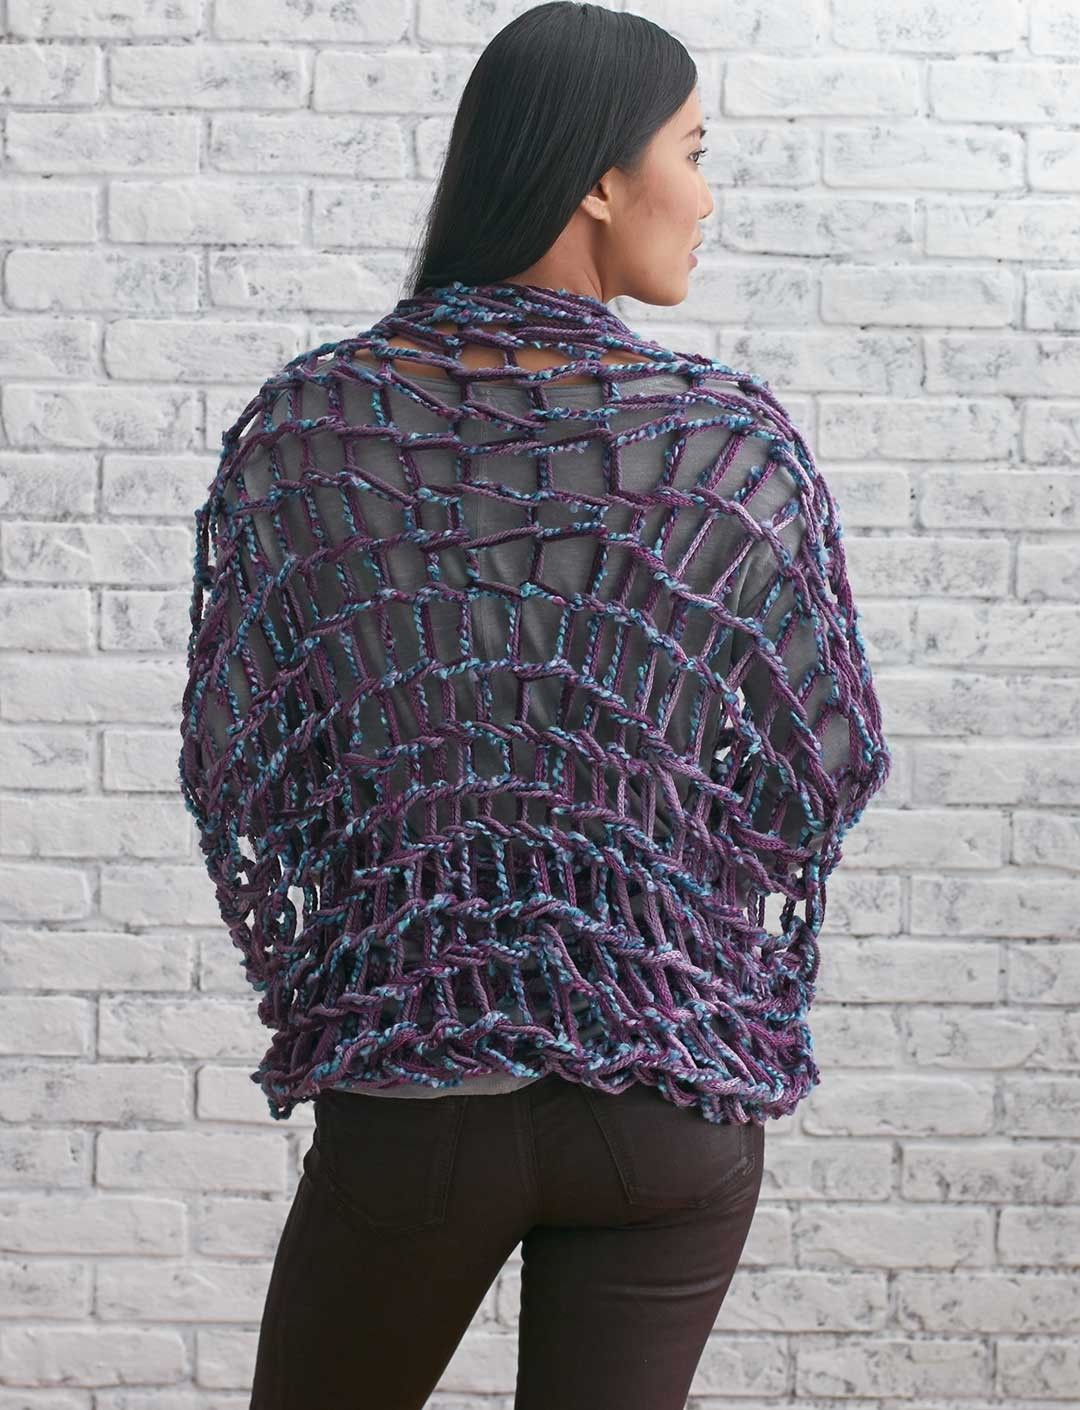 Bernat Arm Knit Shrug | Yarnspirations #armknitting #knit ...